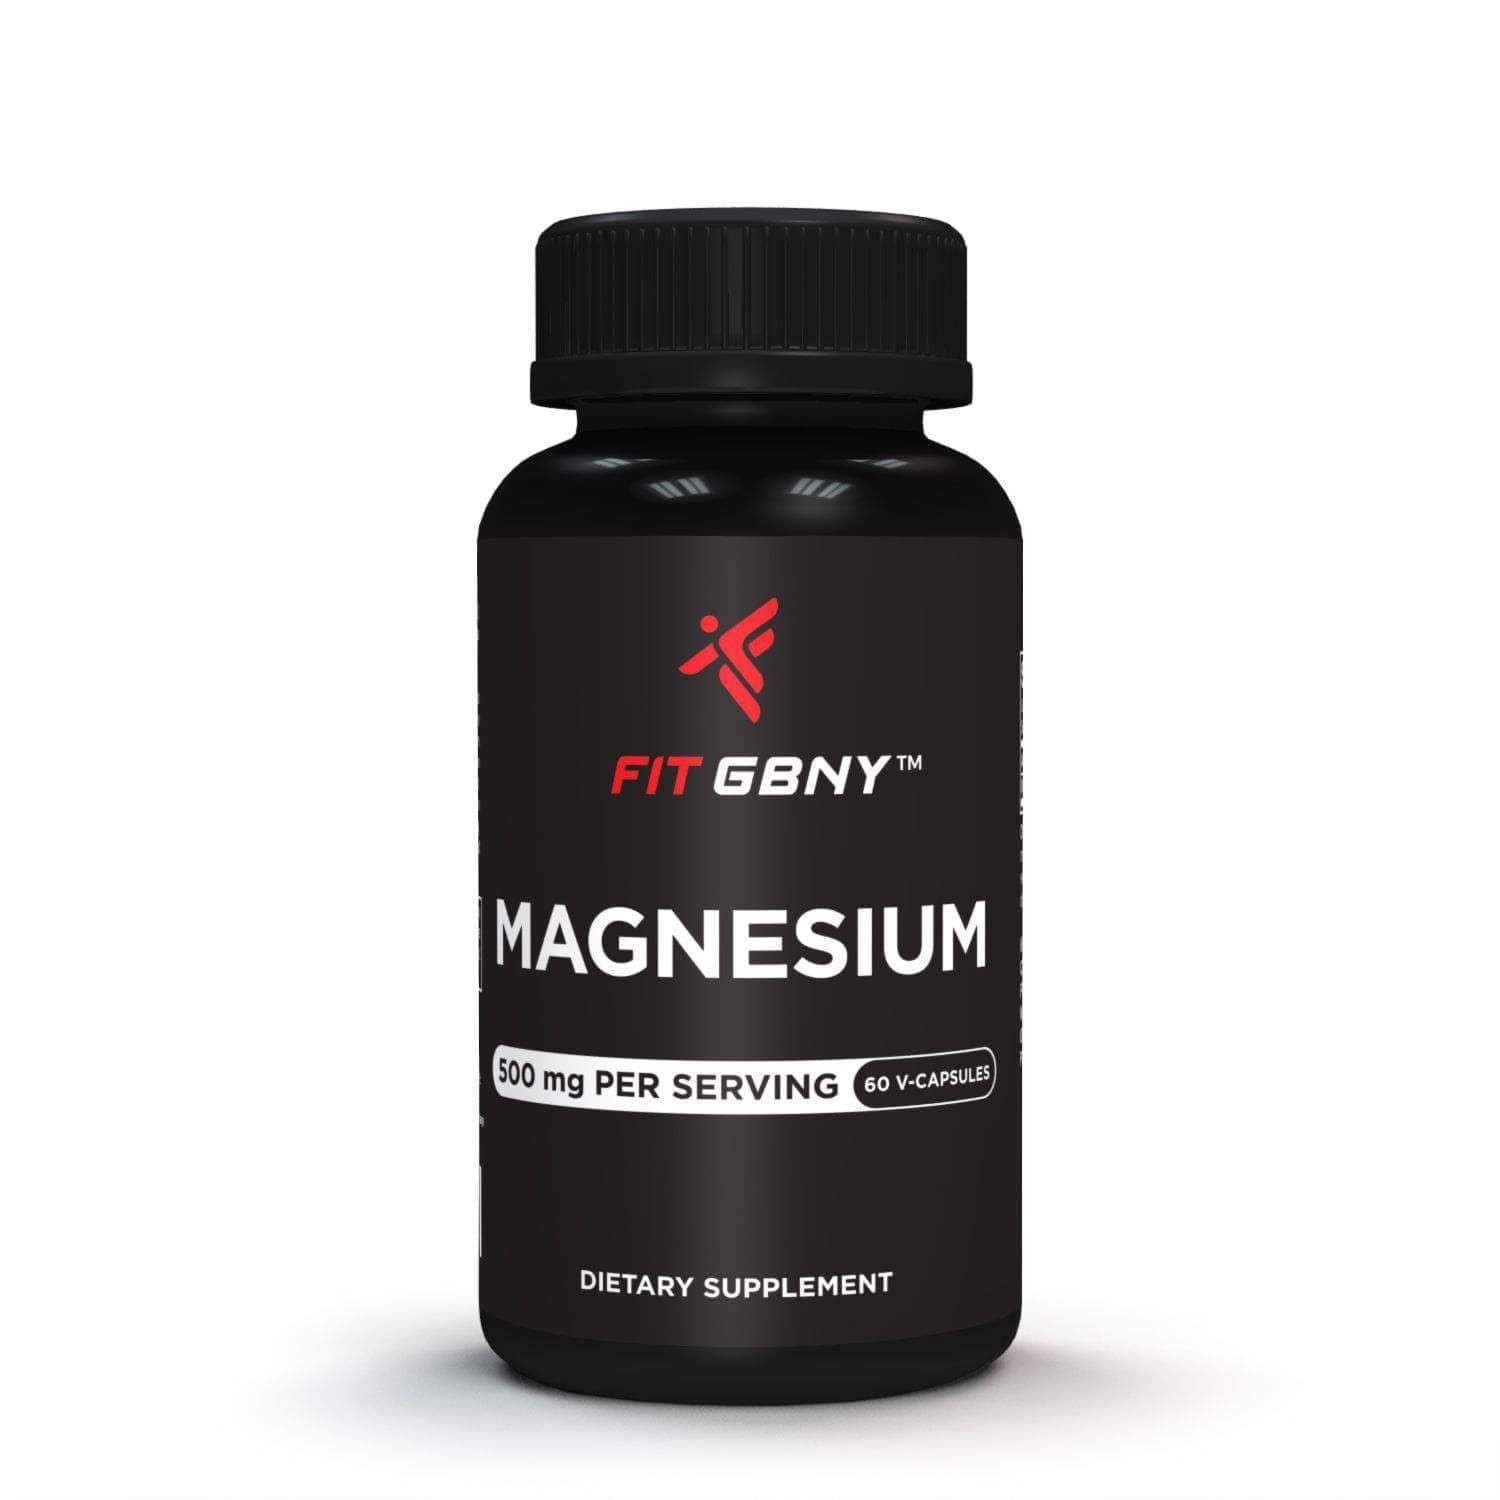 FIT GBNY Supplements Fit GBNY Magnesium 500 mg (60 Veg-Capsules) FGBM500